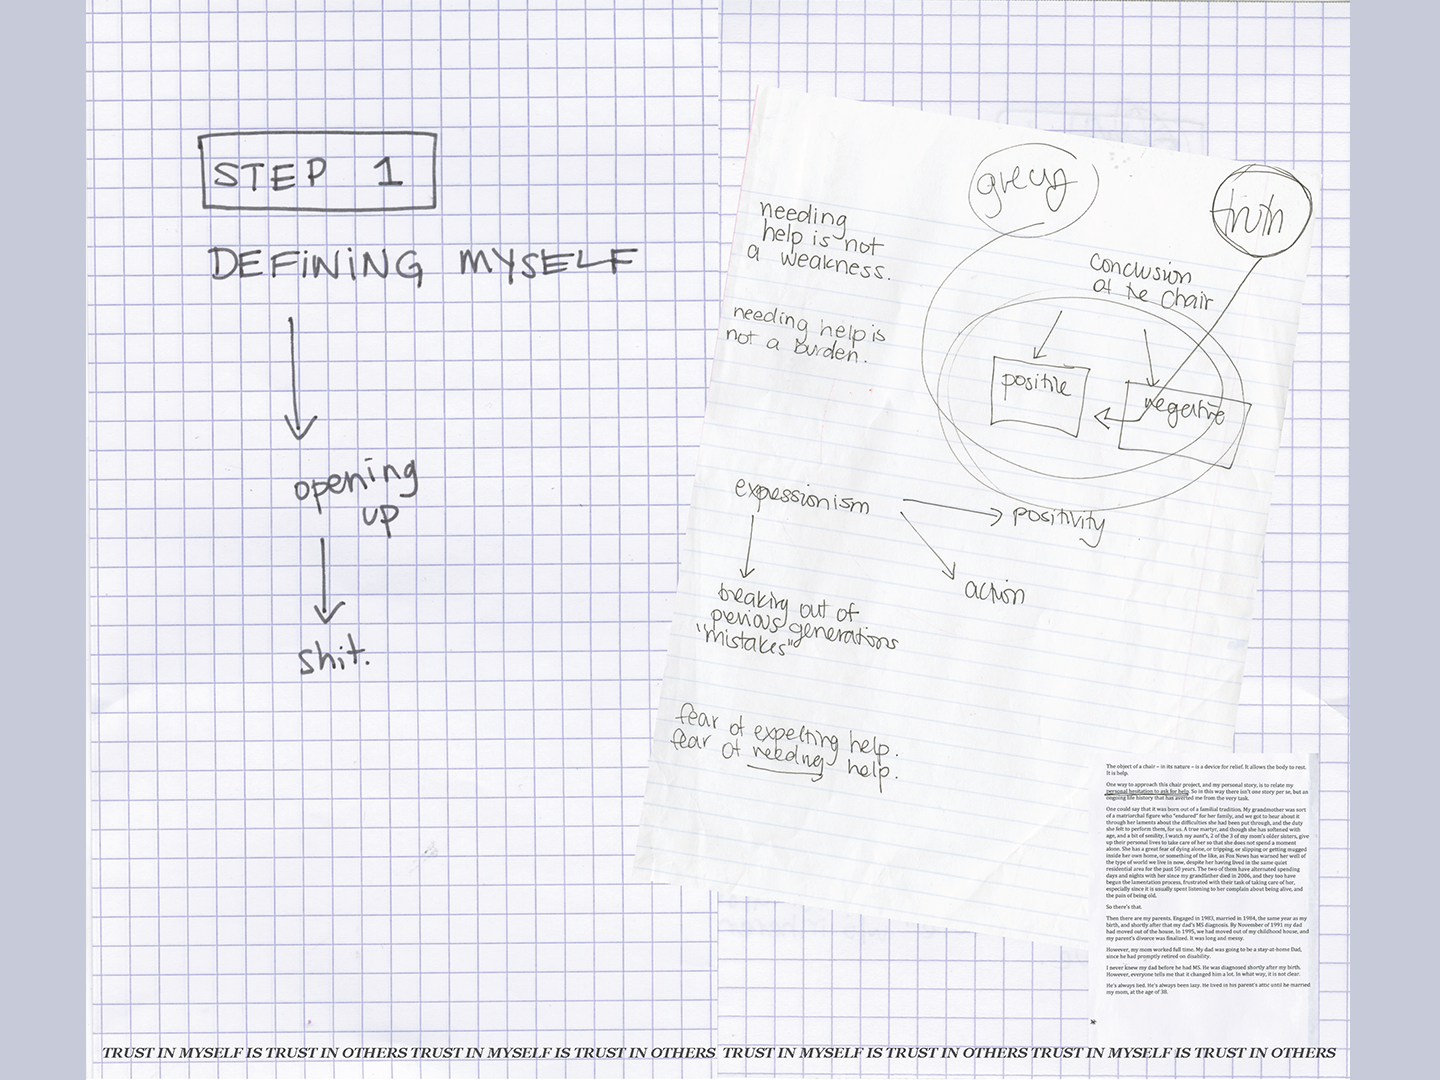 CHAIR_Prototype_Notes1